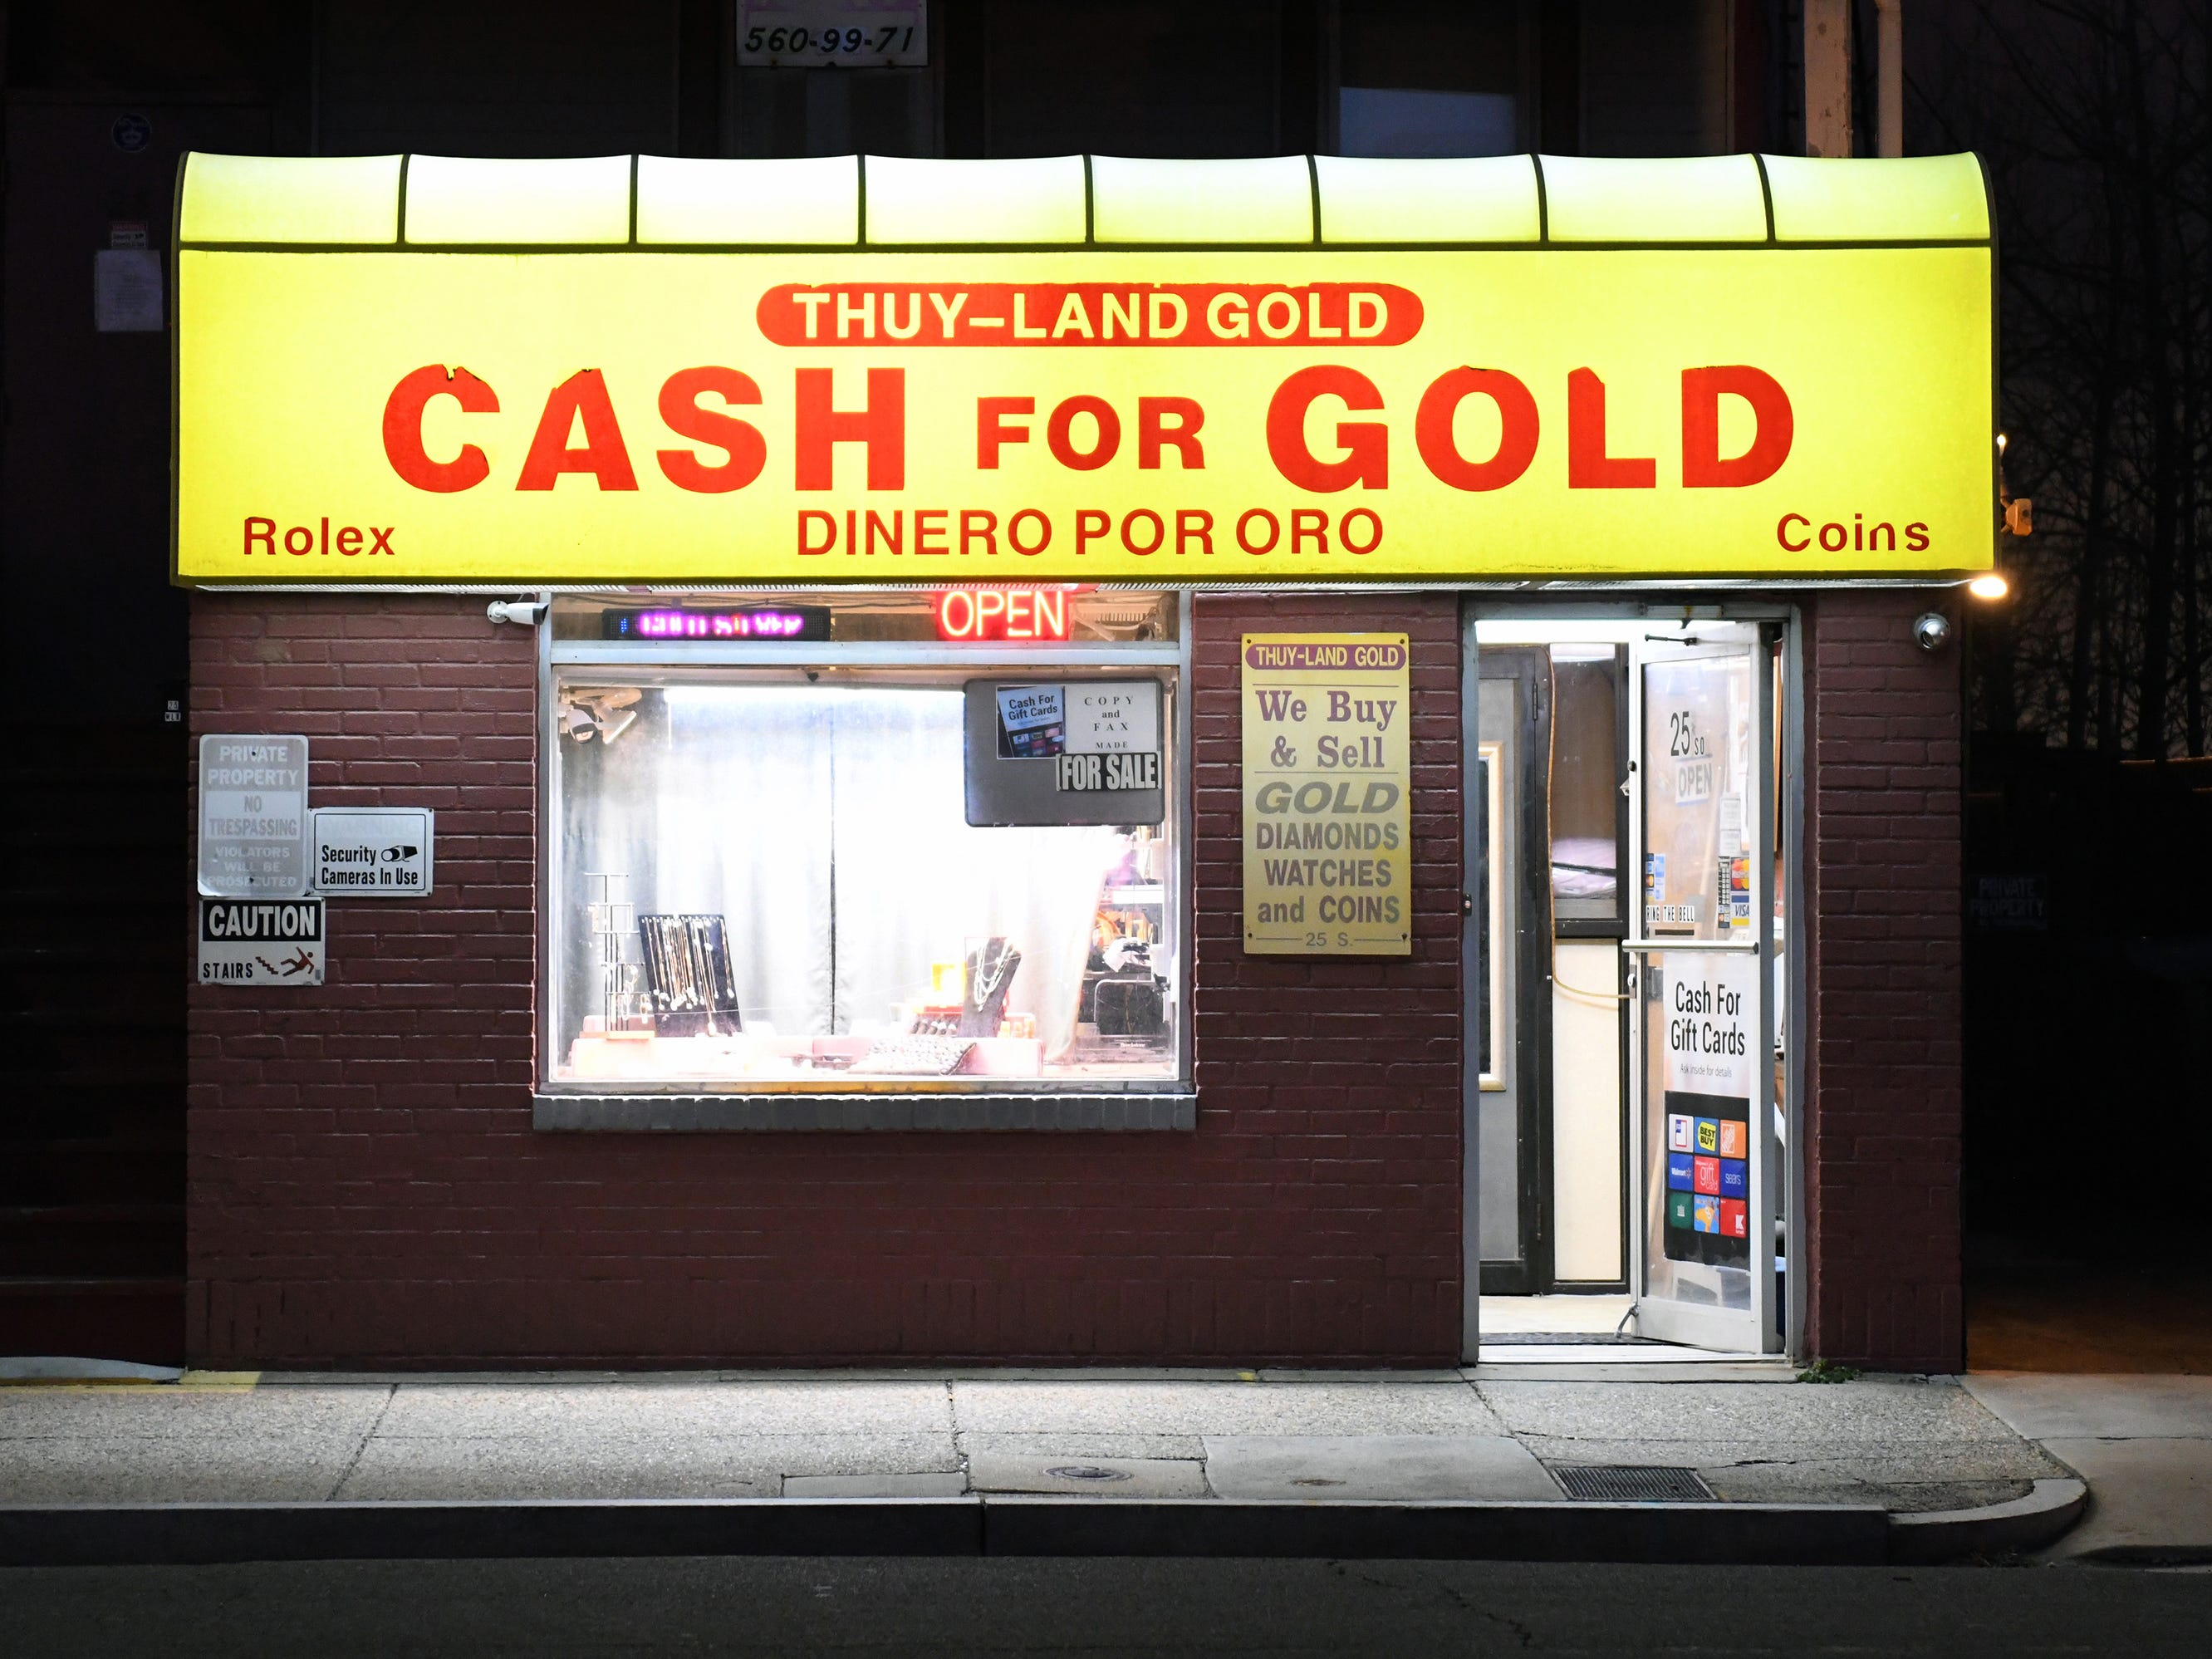 Thuy-Land Gold, a jewerly store specializing in cash for gold, is pictured here on Dr. Martin Luther King Jr. Boulevard in Atlantic City on Friday, Jan. 11, 2019.